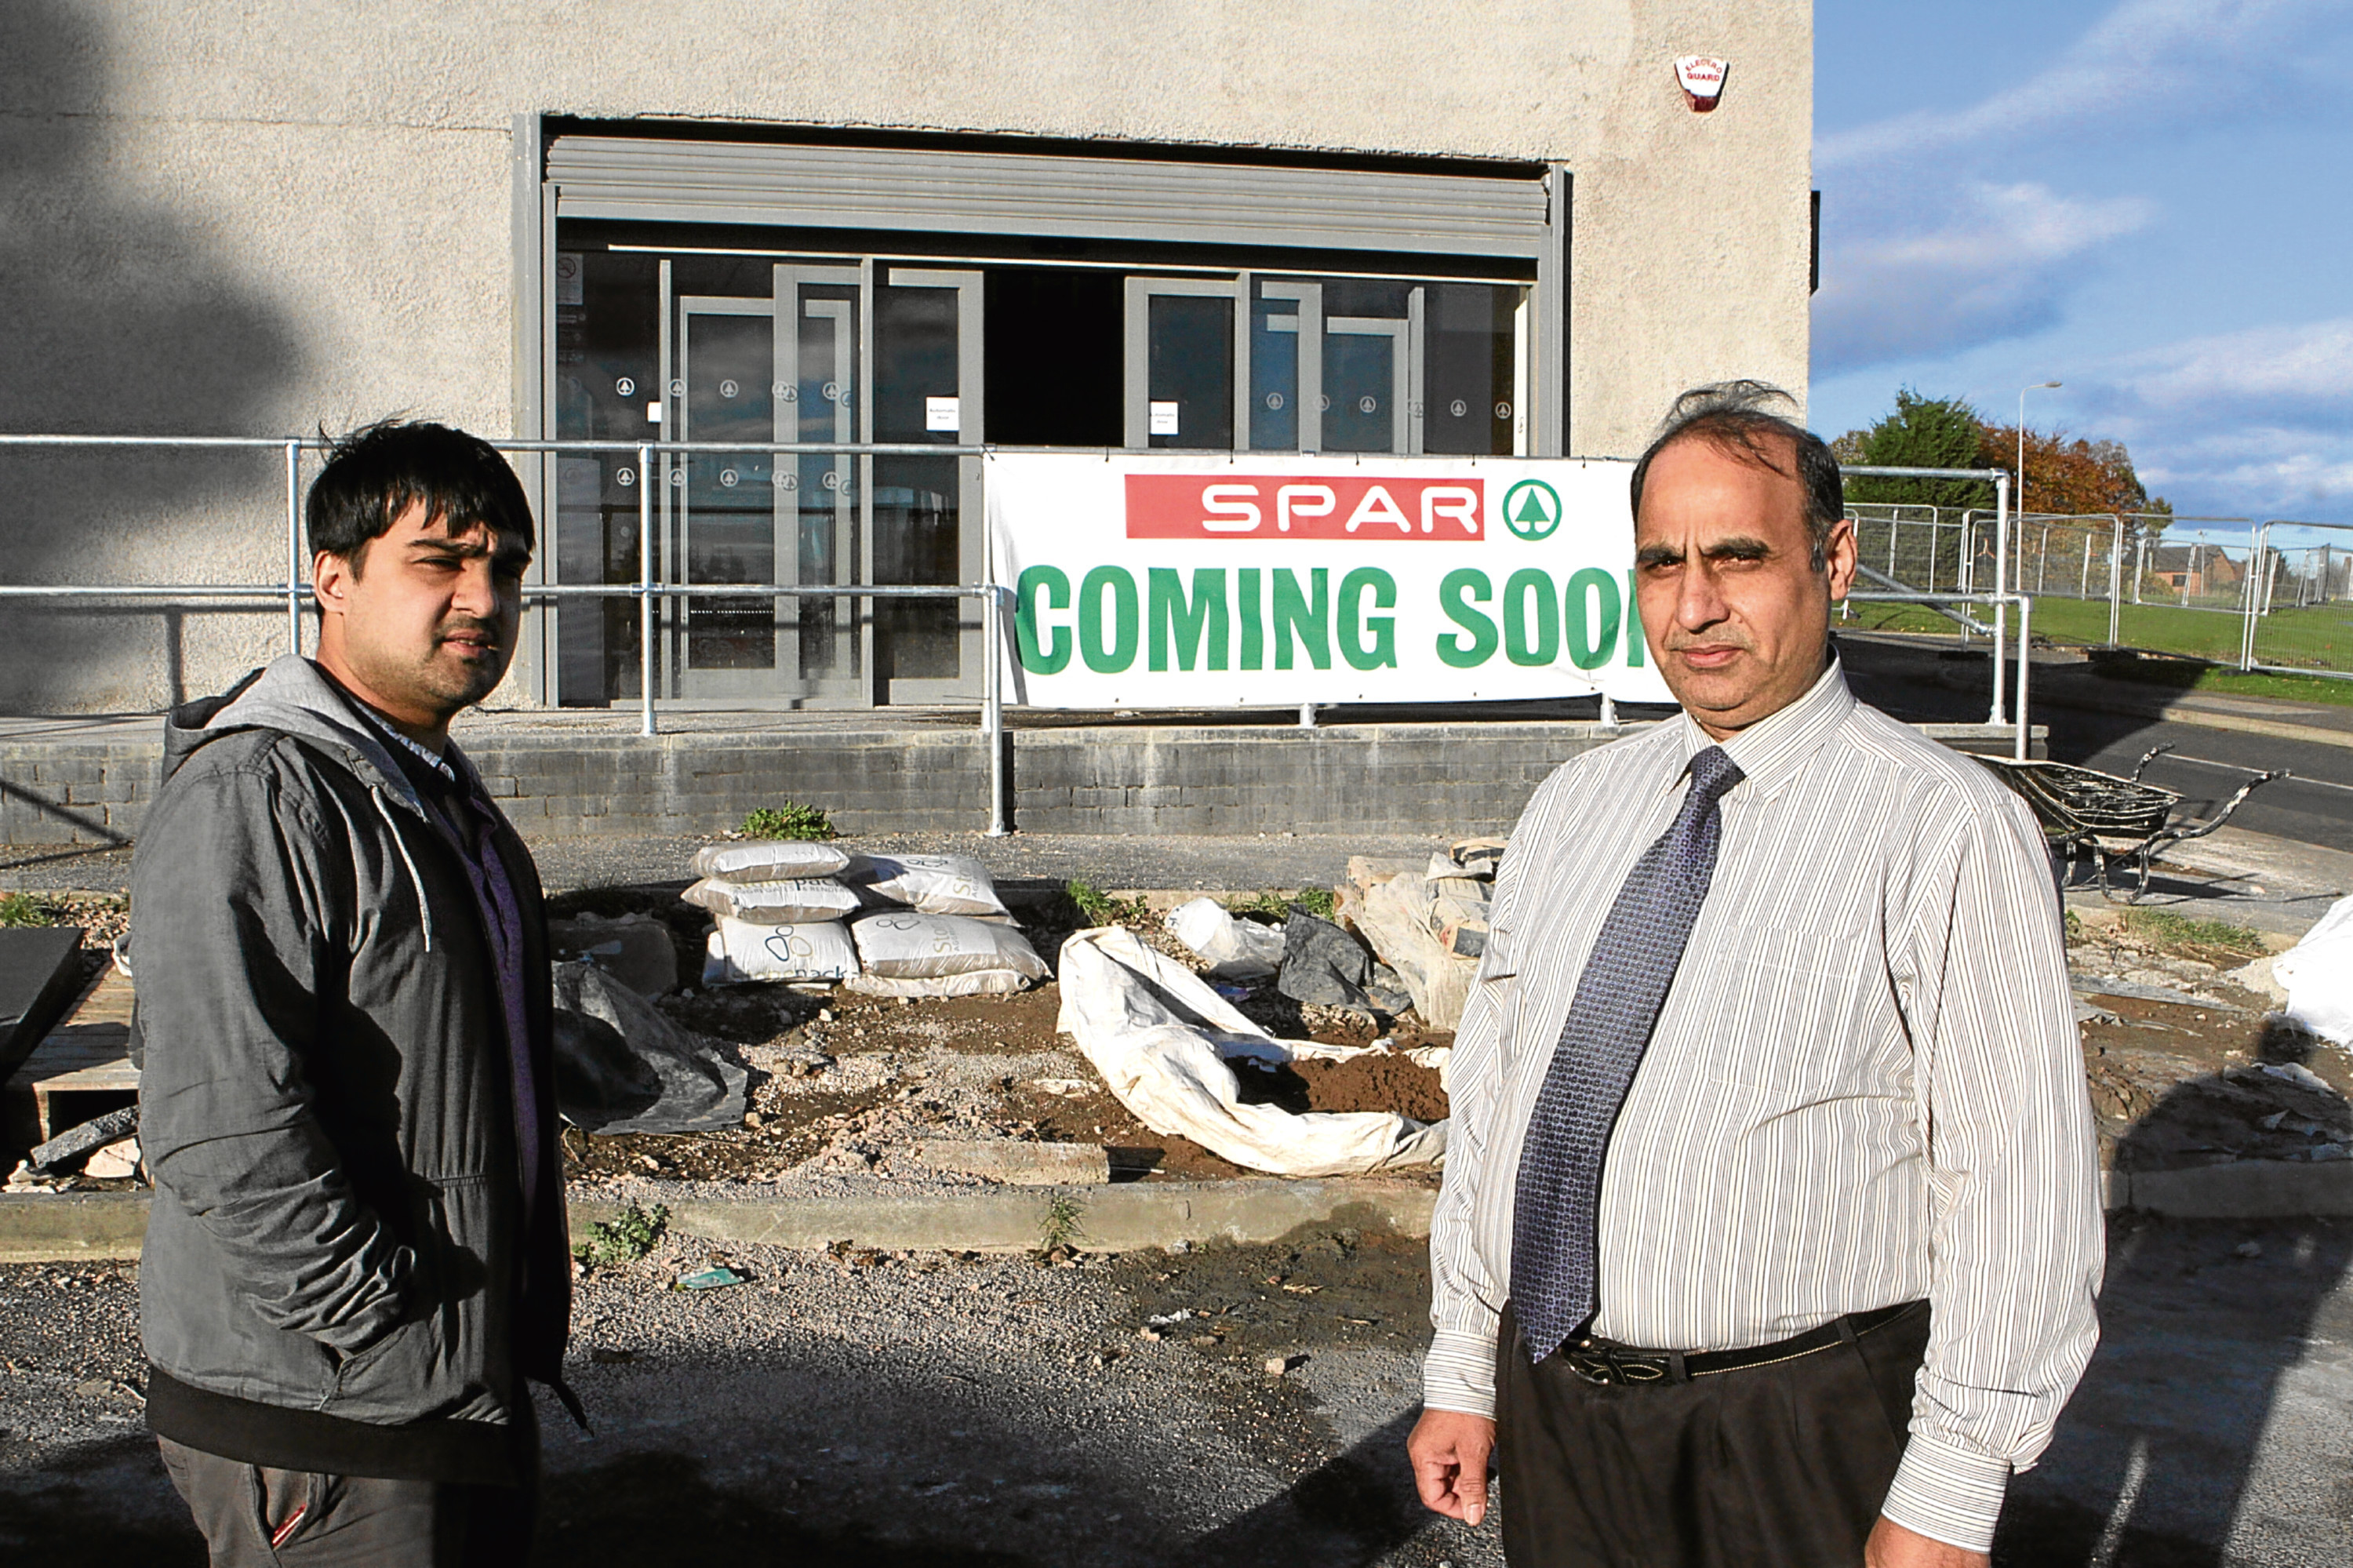 Saeed and Mohammed Asif outside the Spar store, which has been hit by flooding.